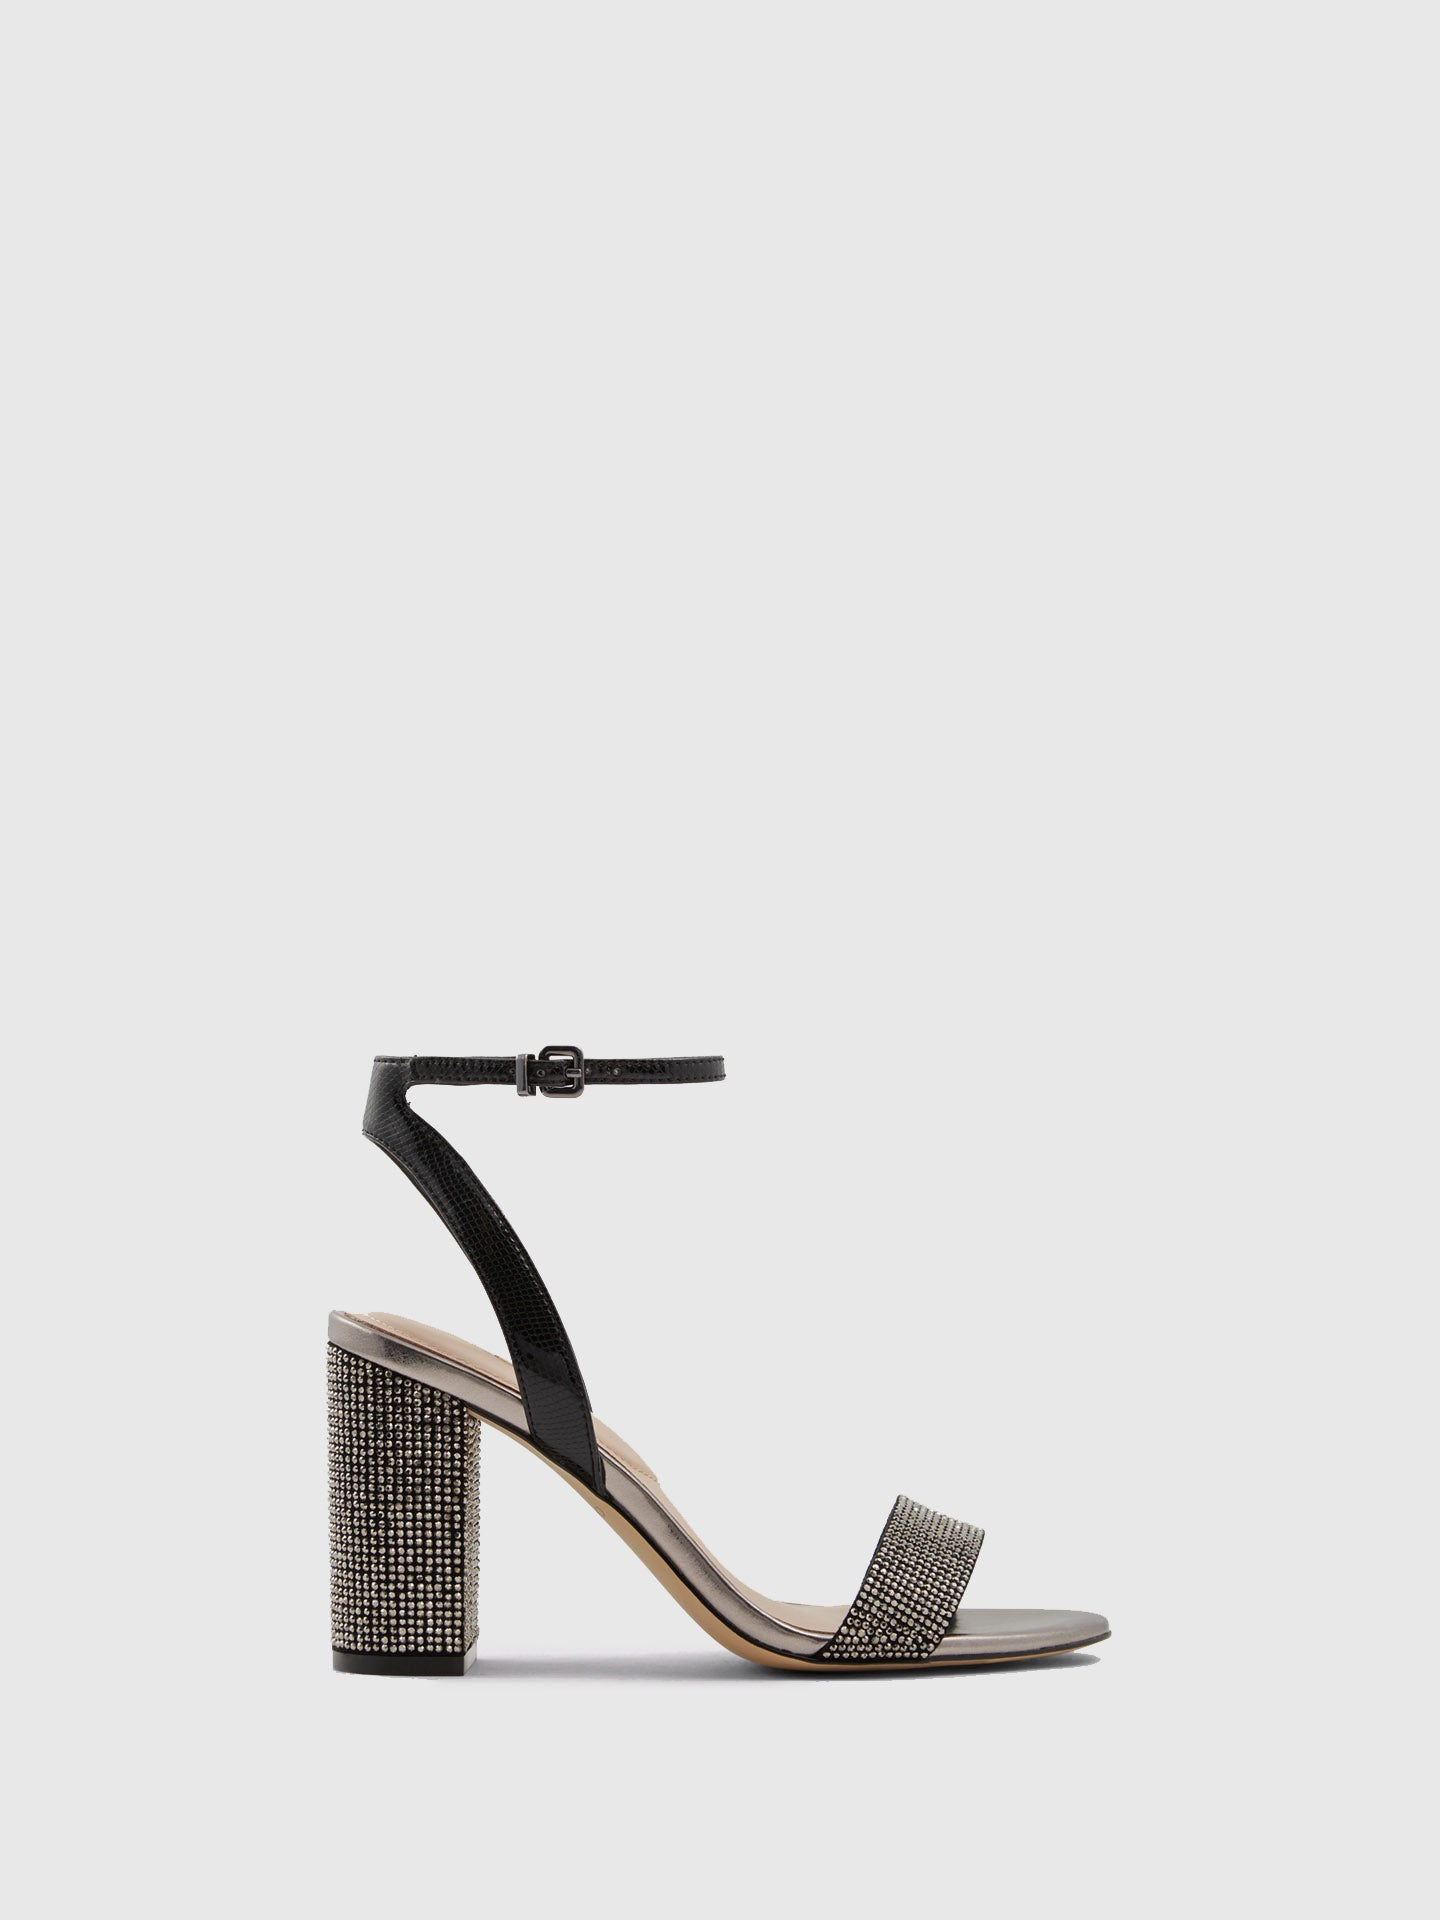 Aldo Black Chunky Heel Sandals